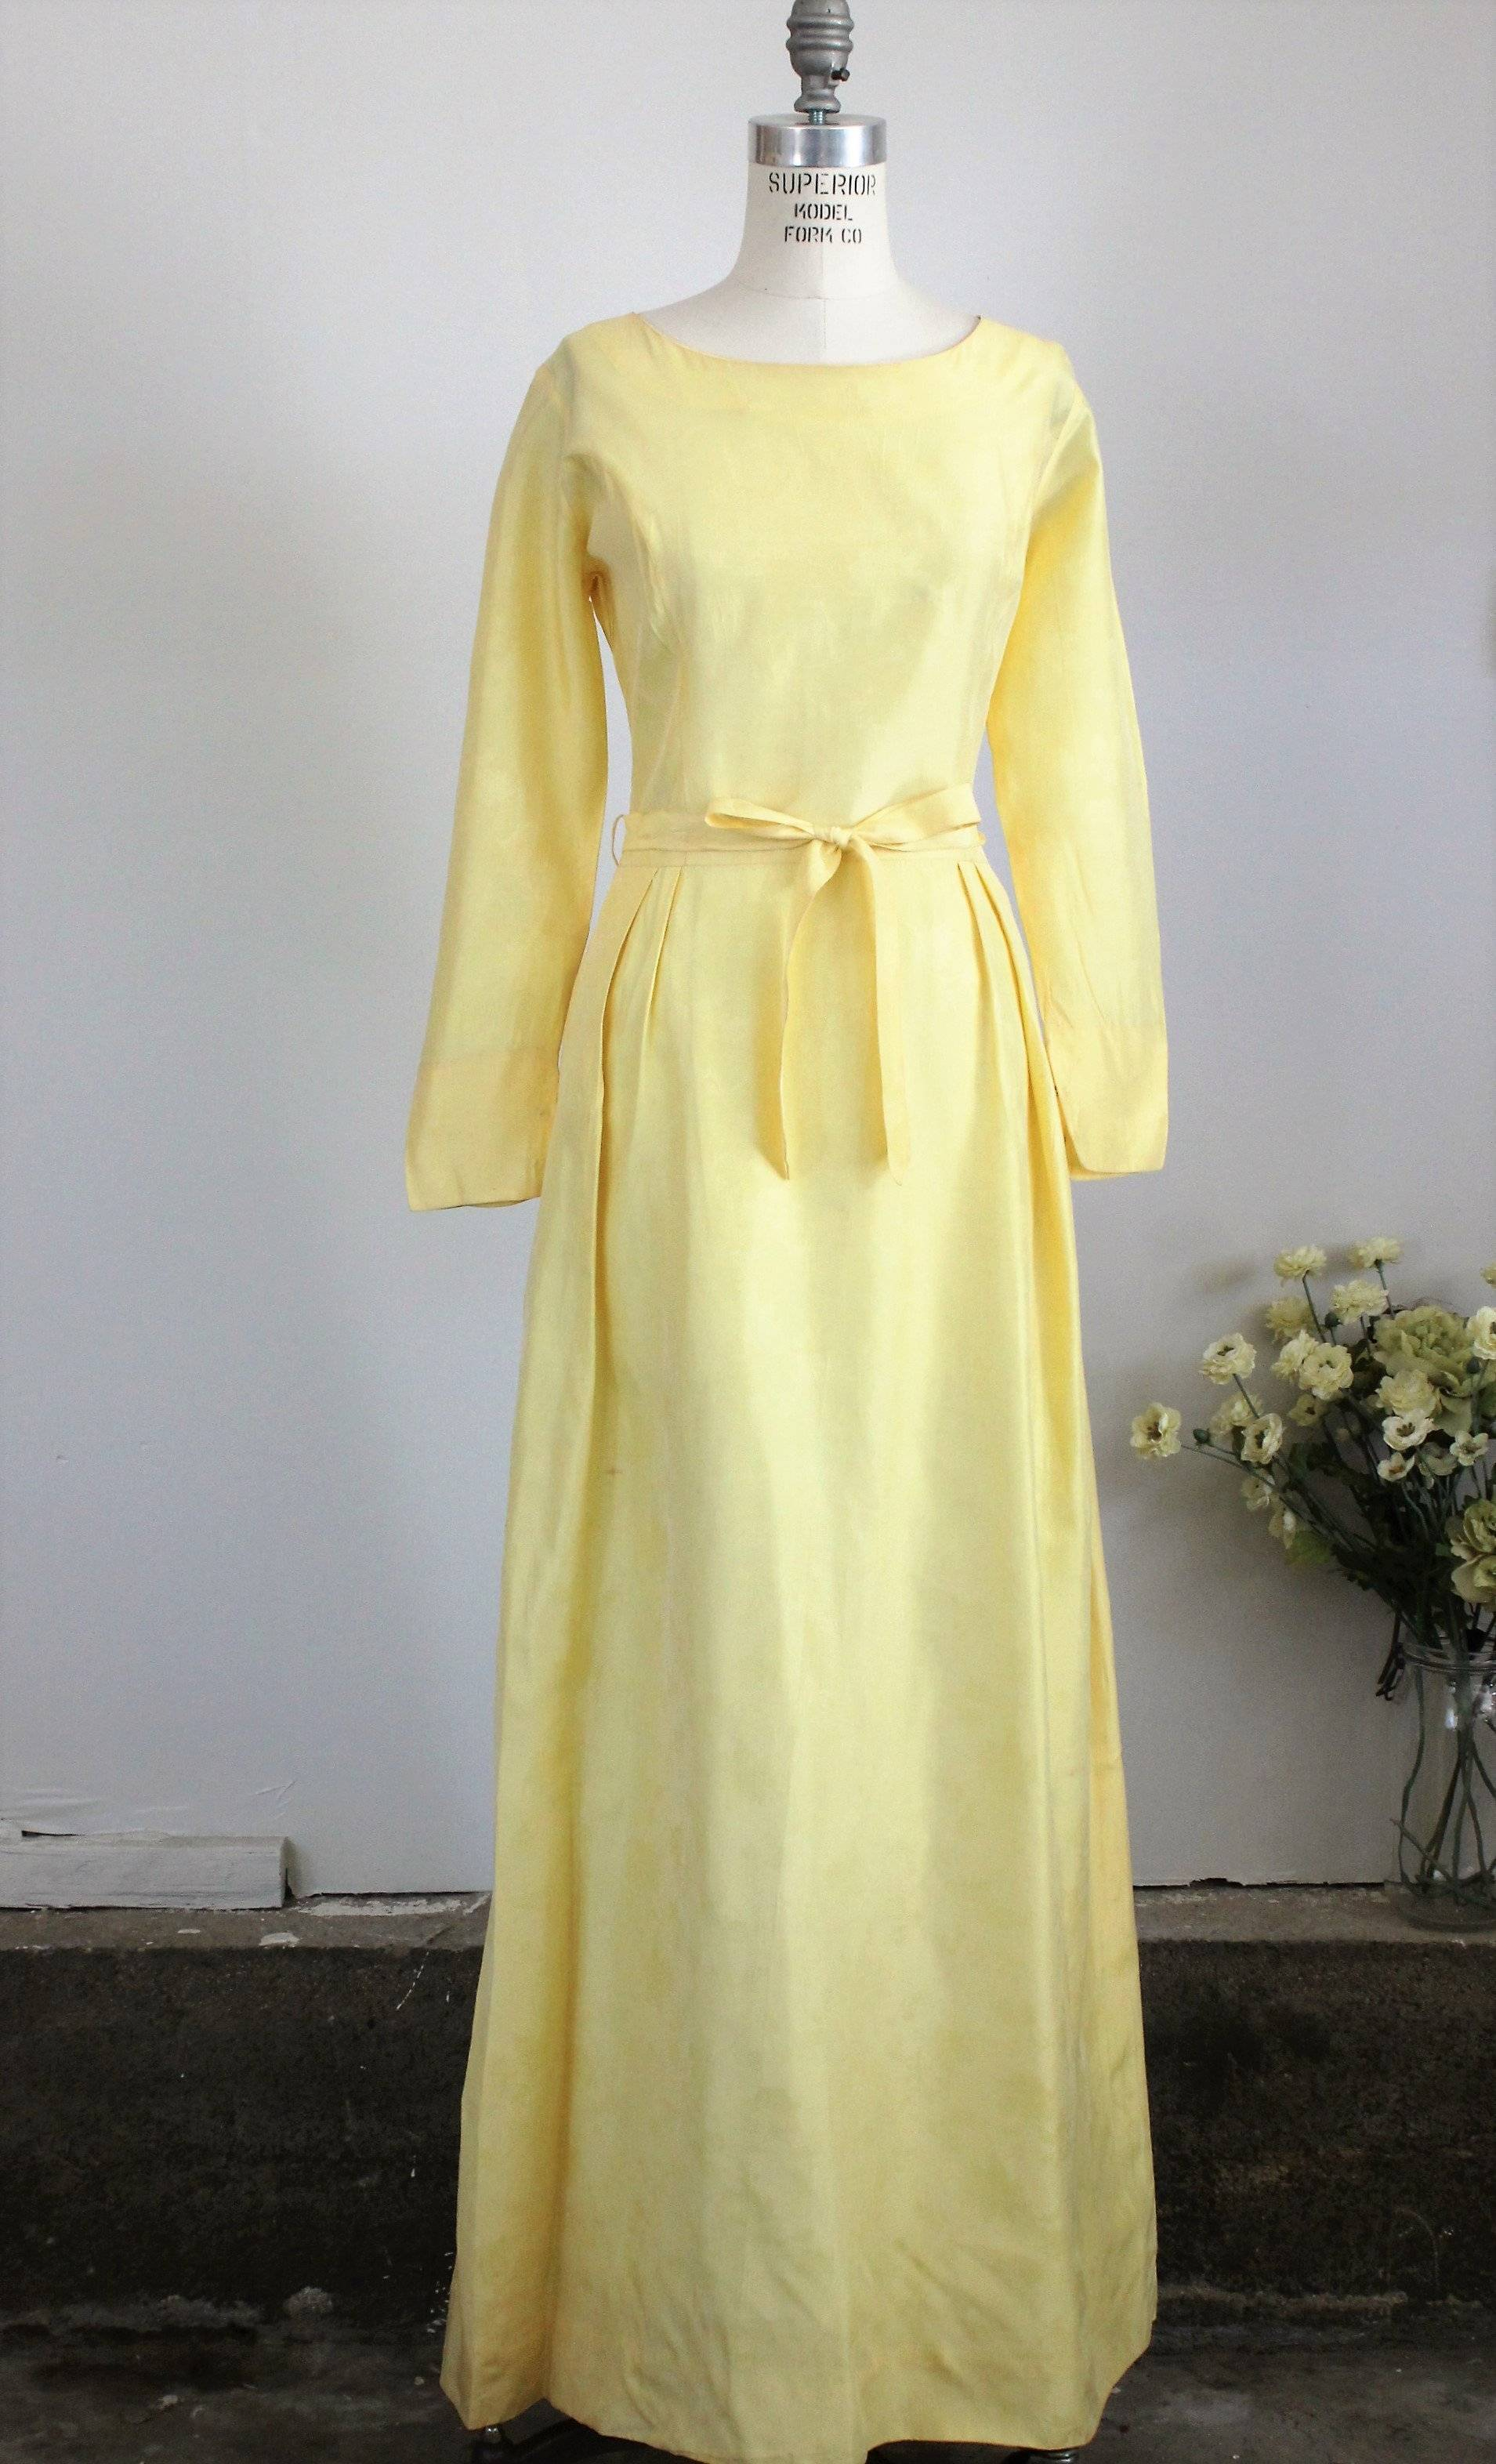 Vintage 1960s Yellow Maxi Dress, Bridesmaid, Party or Prom